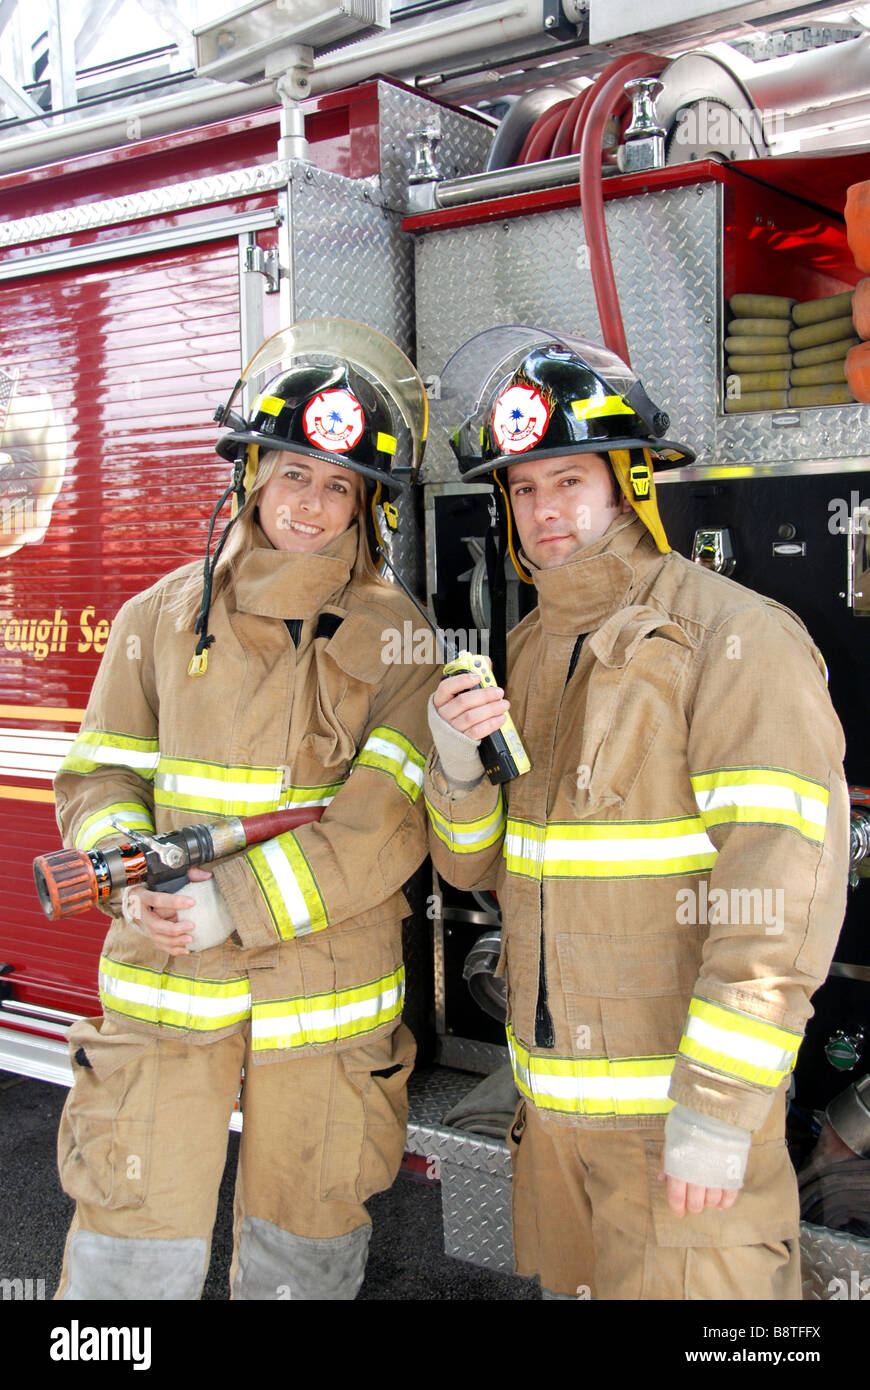 Male and Female Firefighters standing in front of fire truck with radio and hose - Stock Image